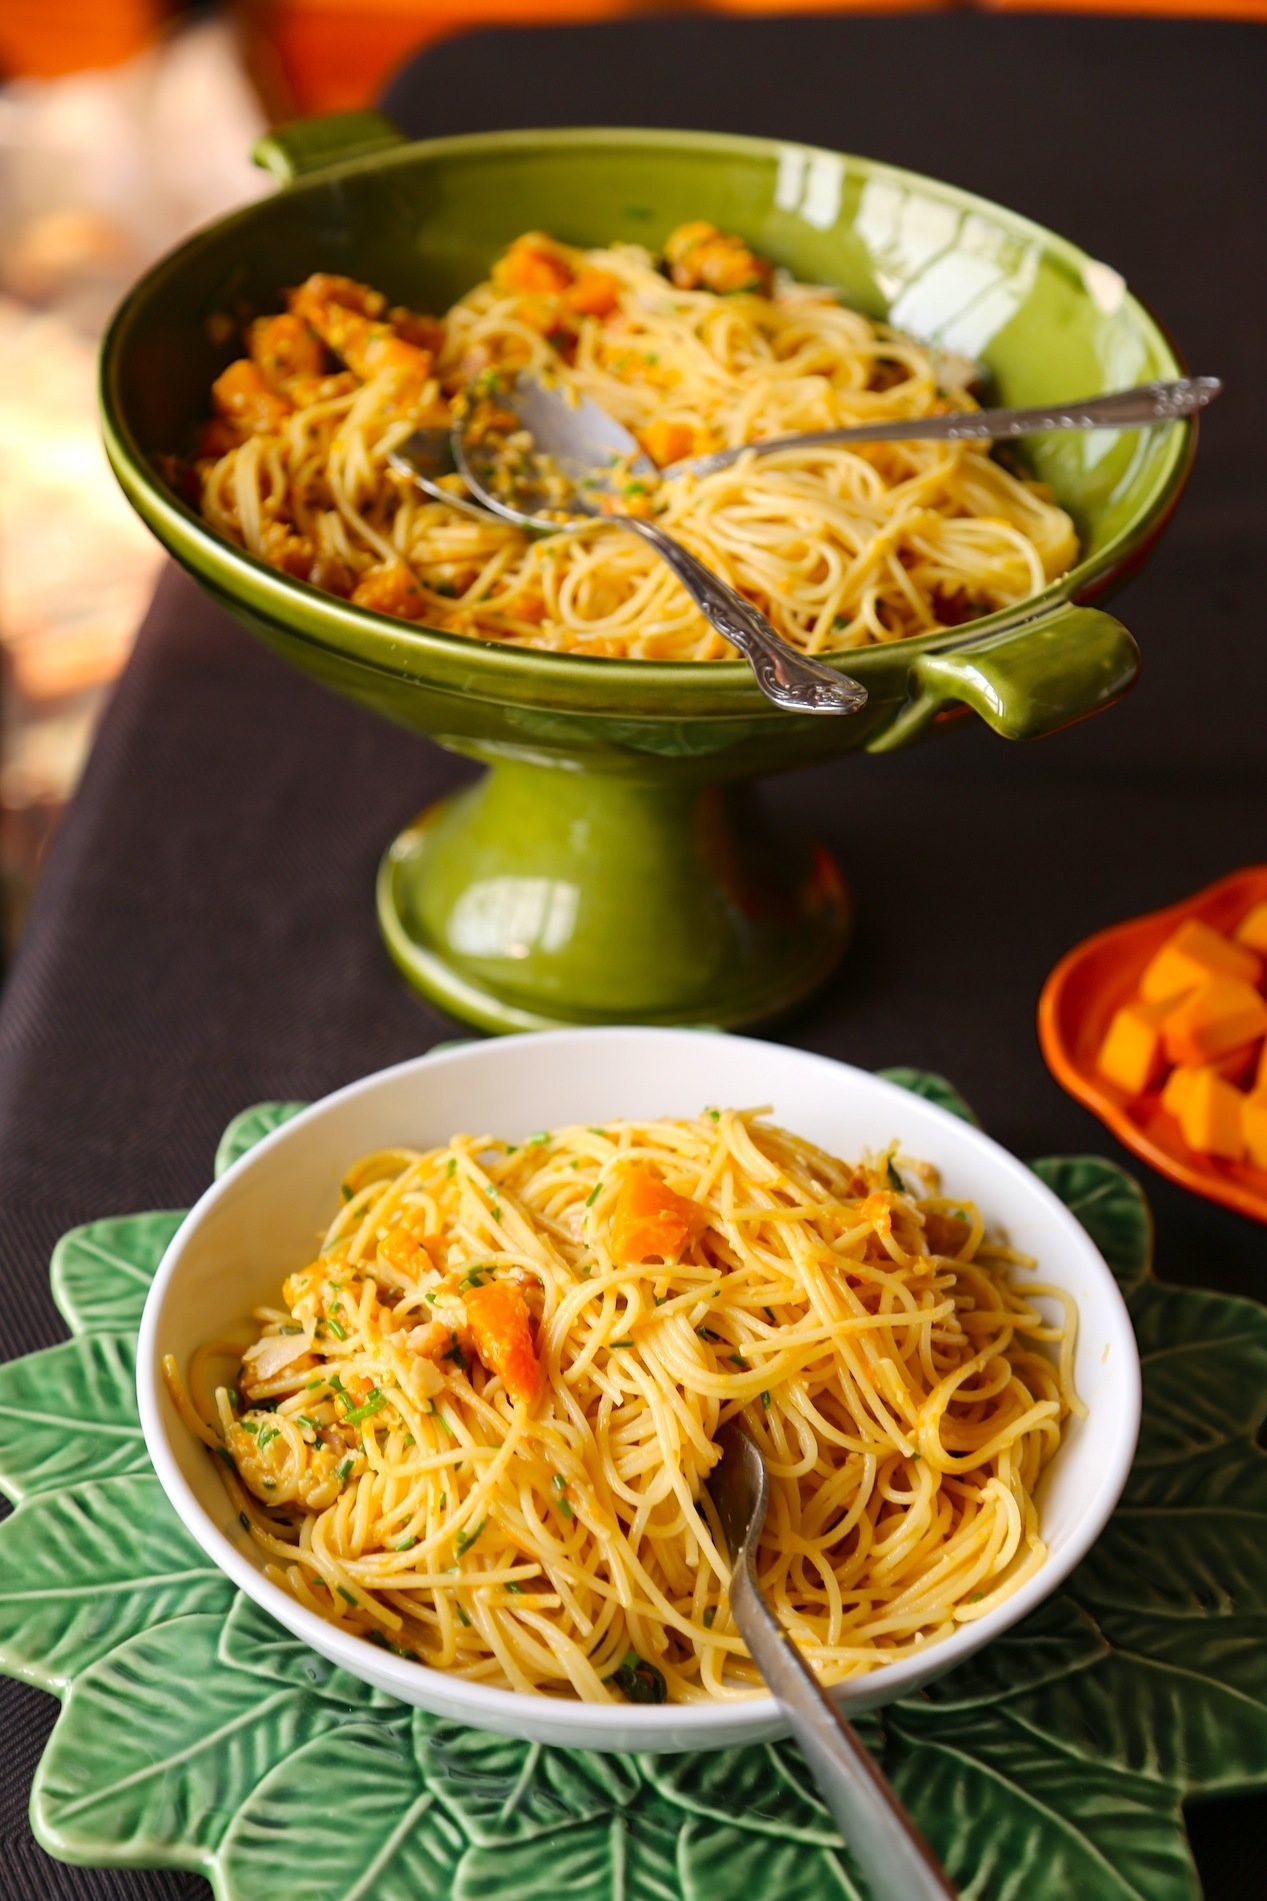 PASTA WITH PUMPKIN AND CHIVES